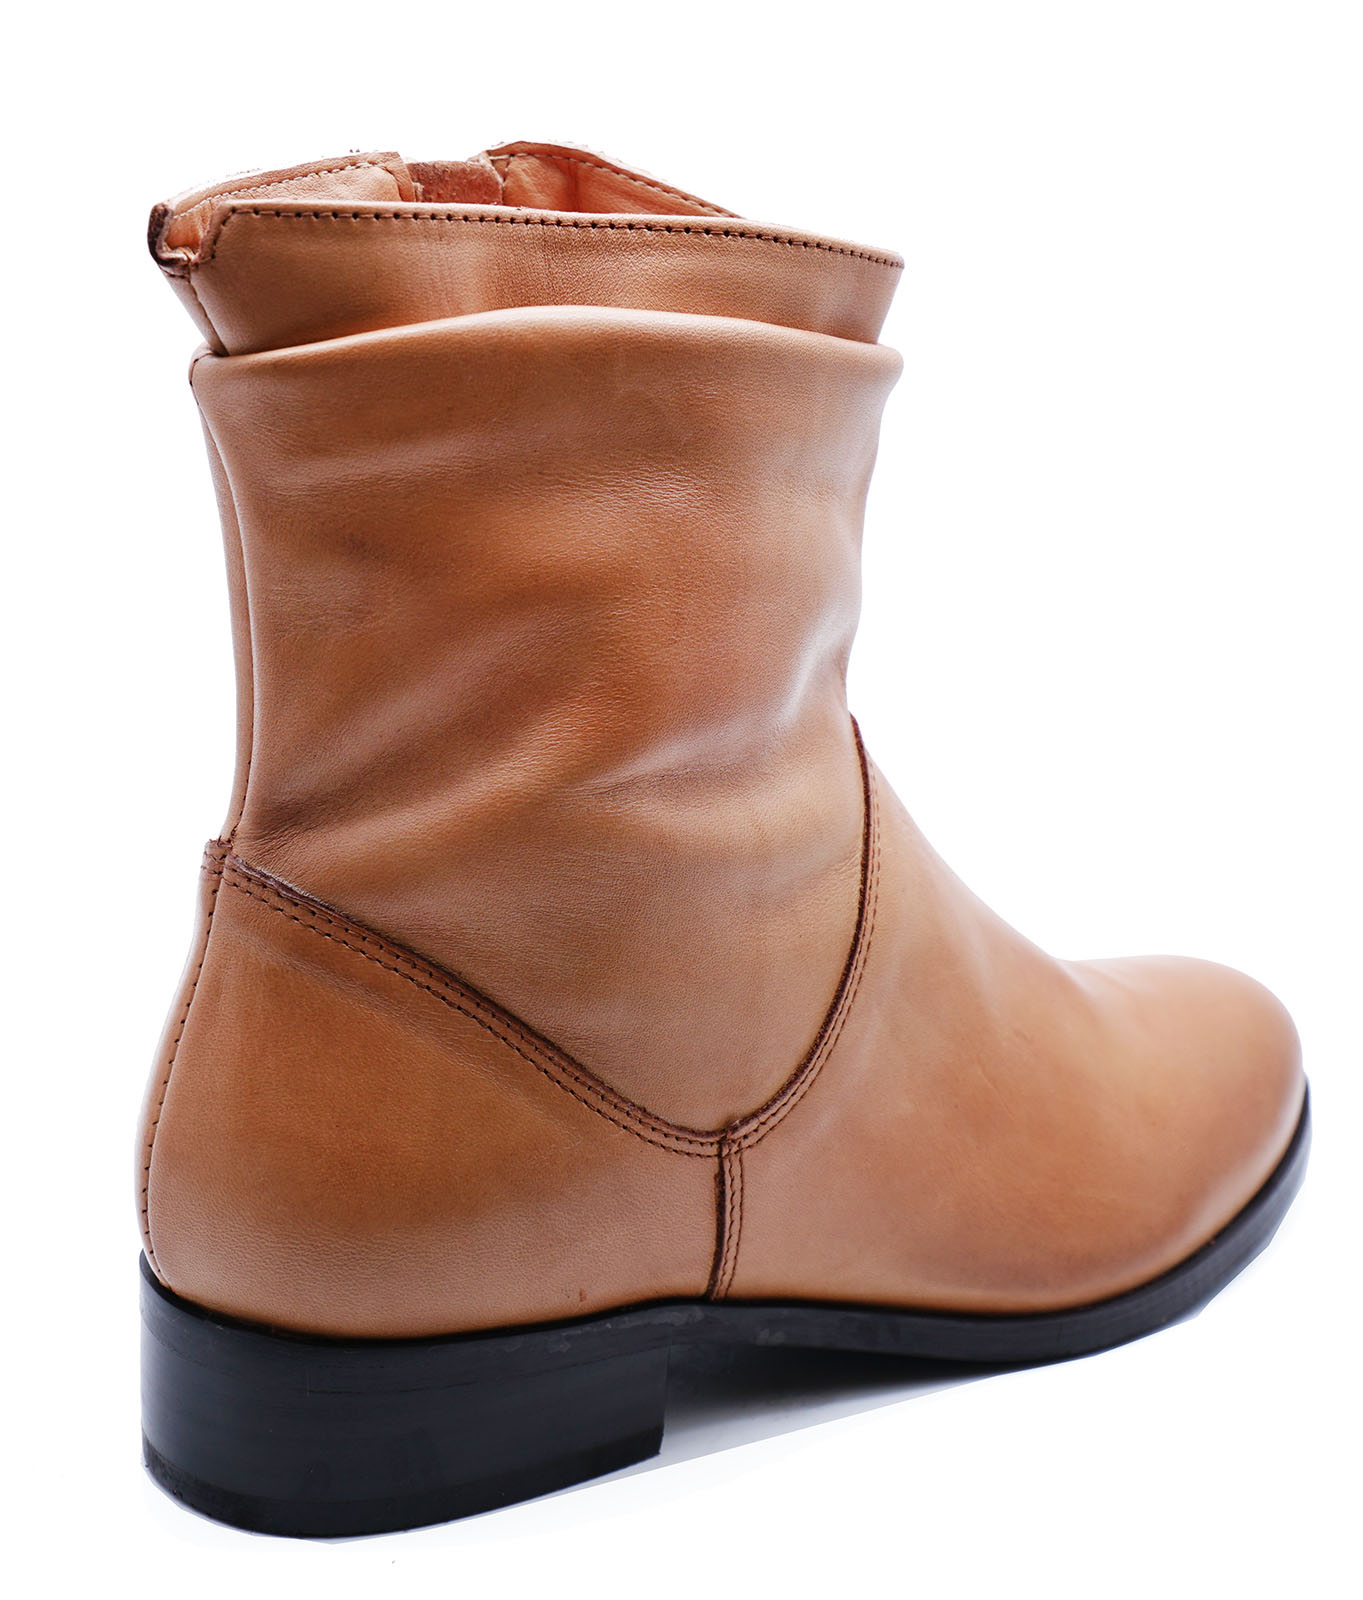 LADIES-FLAT-GENUINE-LEATHER-TAN-ZIP-UP-ANKLE-CALF-BOOTS-COMFY-SHOES-SIZES-2-9 thumbnail 14